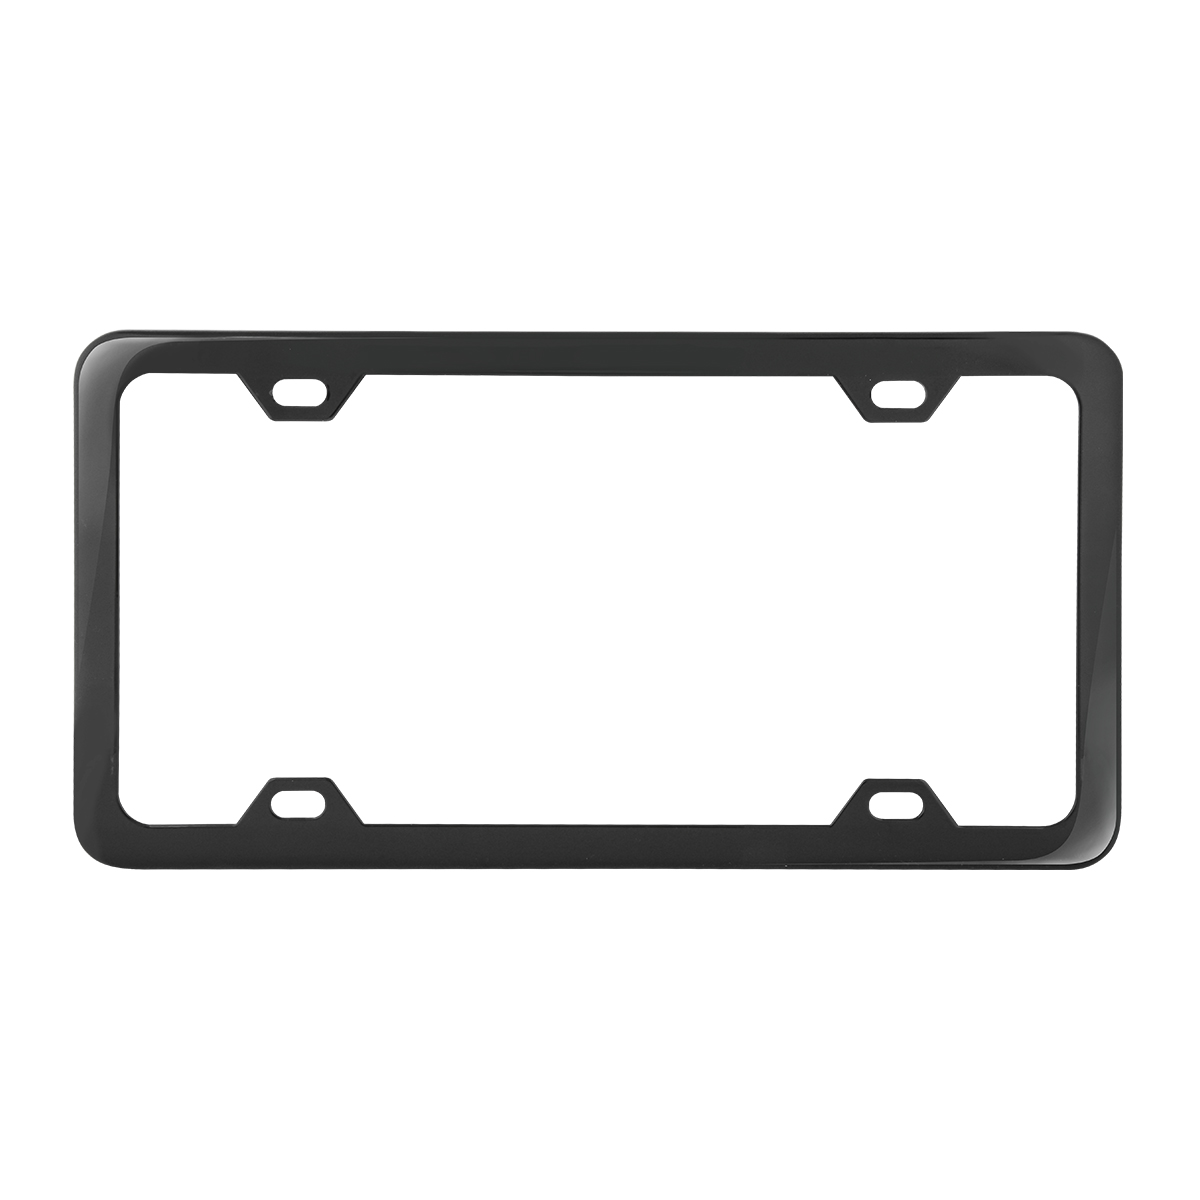 60415 Plain Semi-Gloss Black 4 Hole License Plate Frame